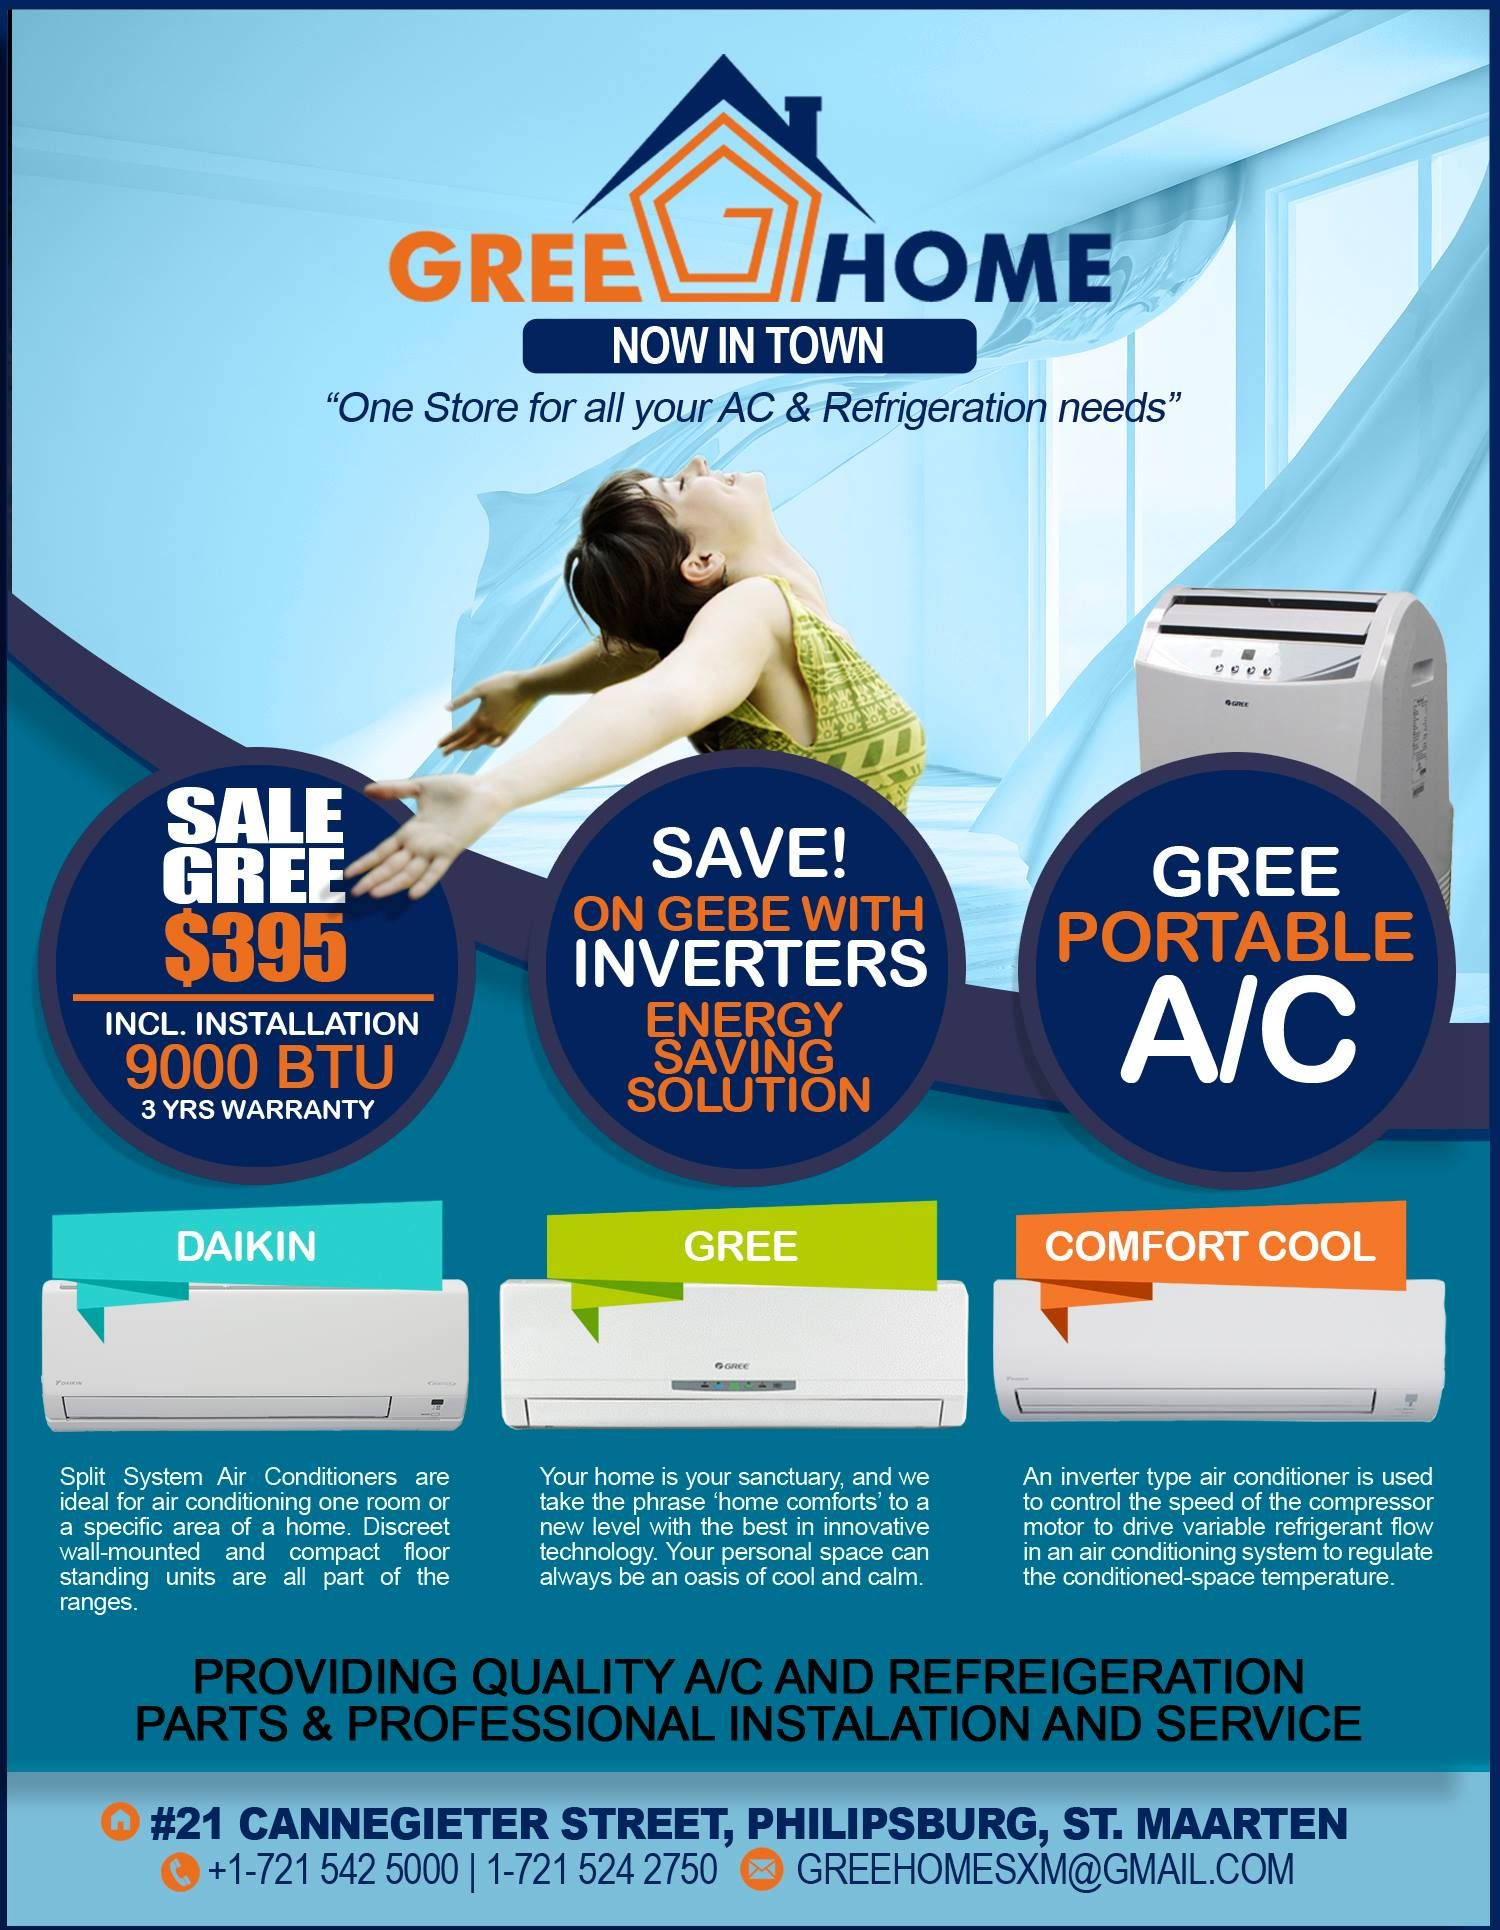 Tips to Follow When Buying an Aircon in 2020